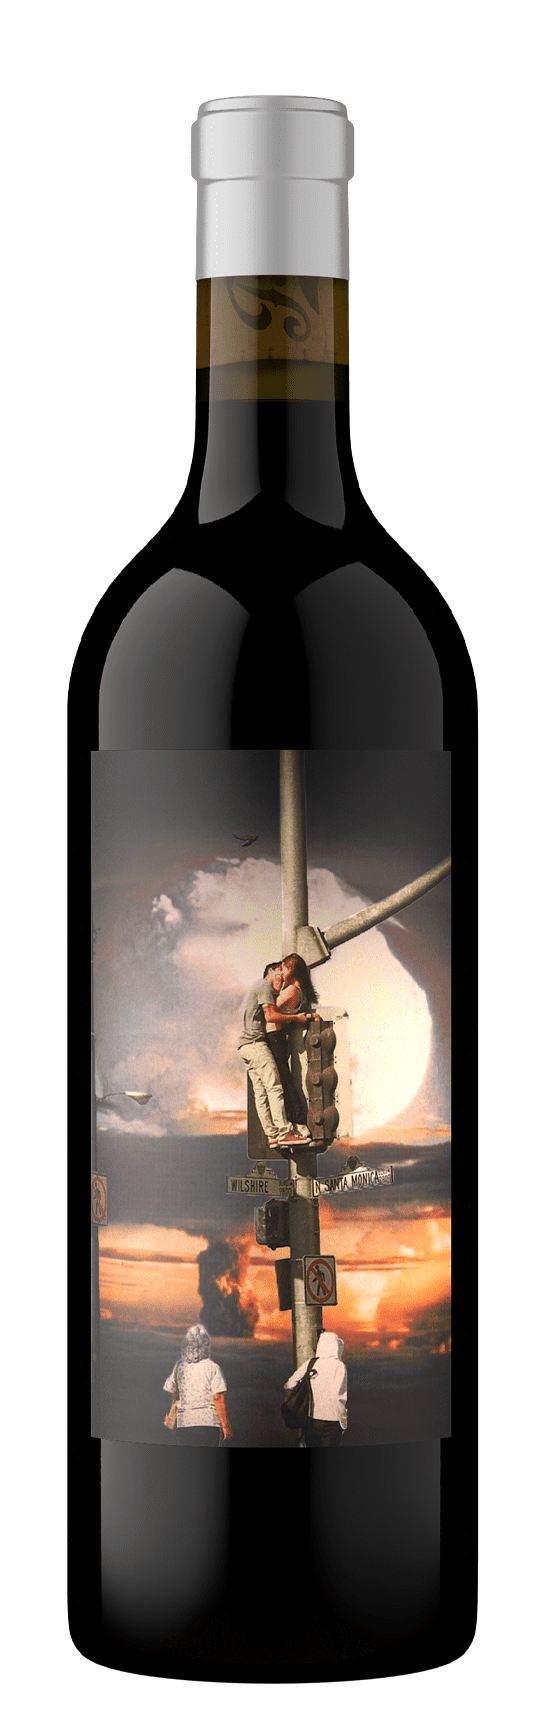 2018 High Hopes, Red Wine, Russian River Valley